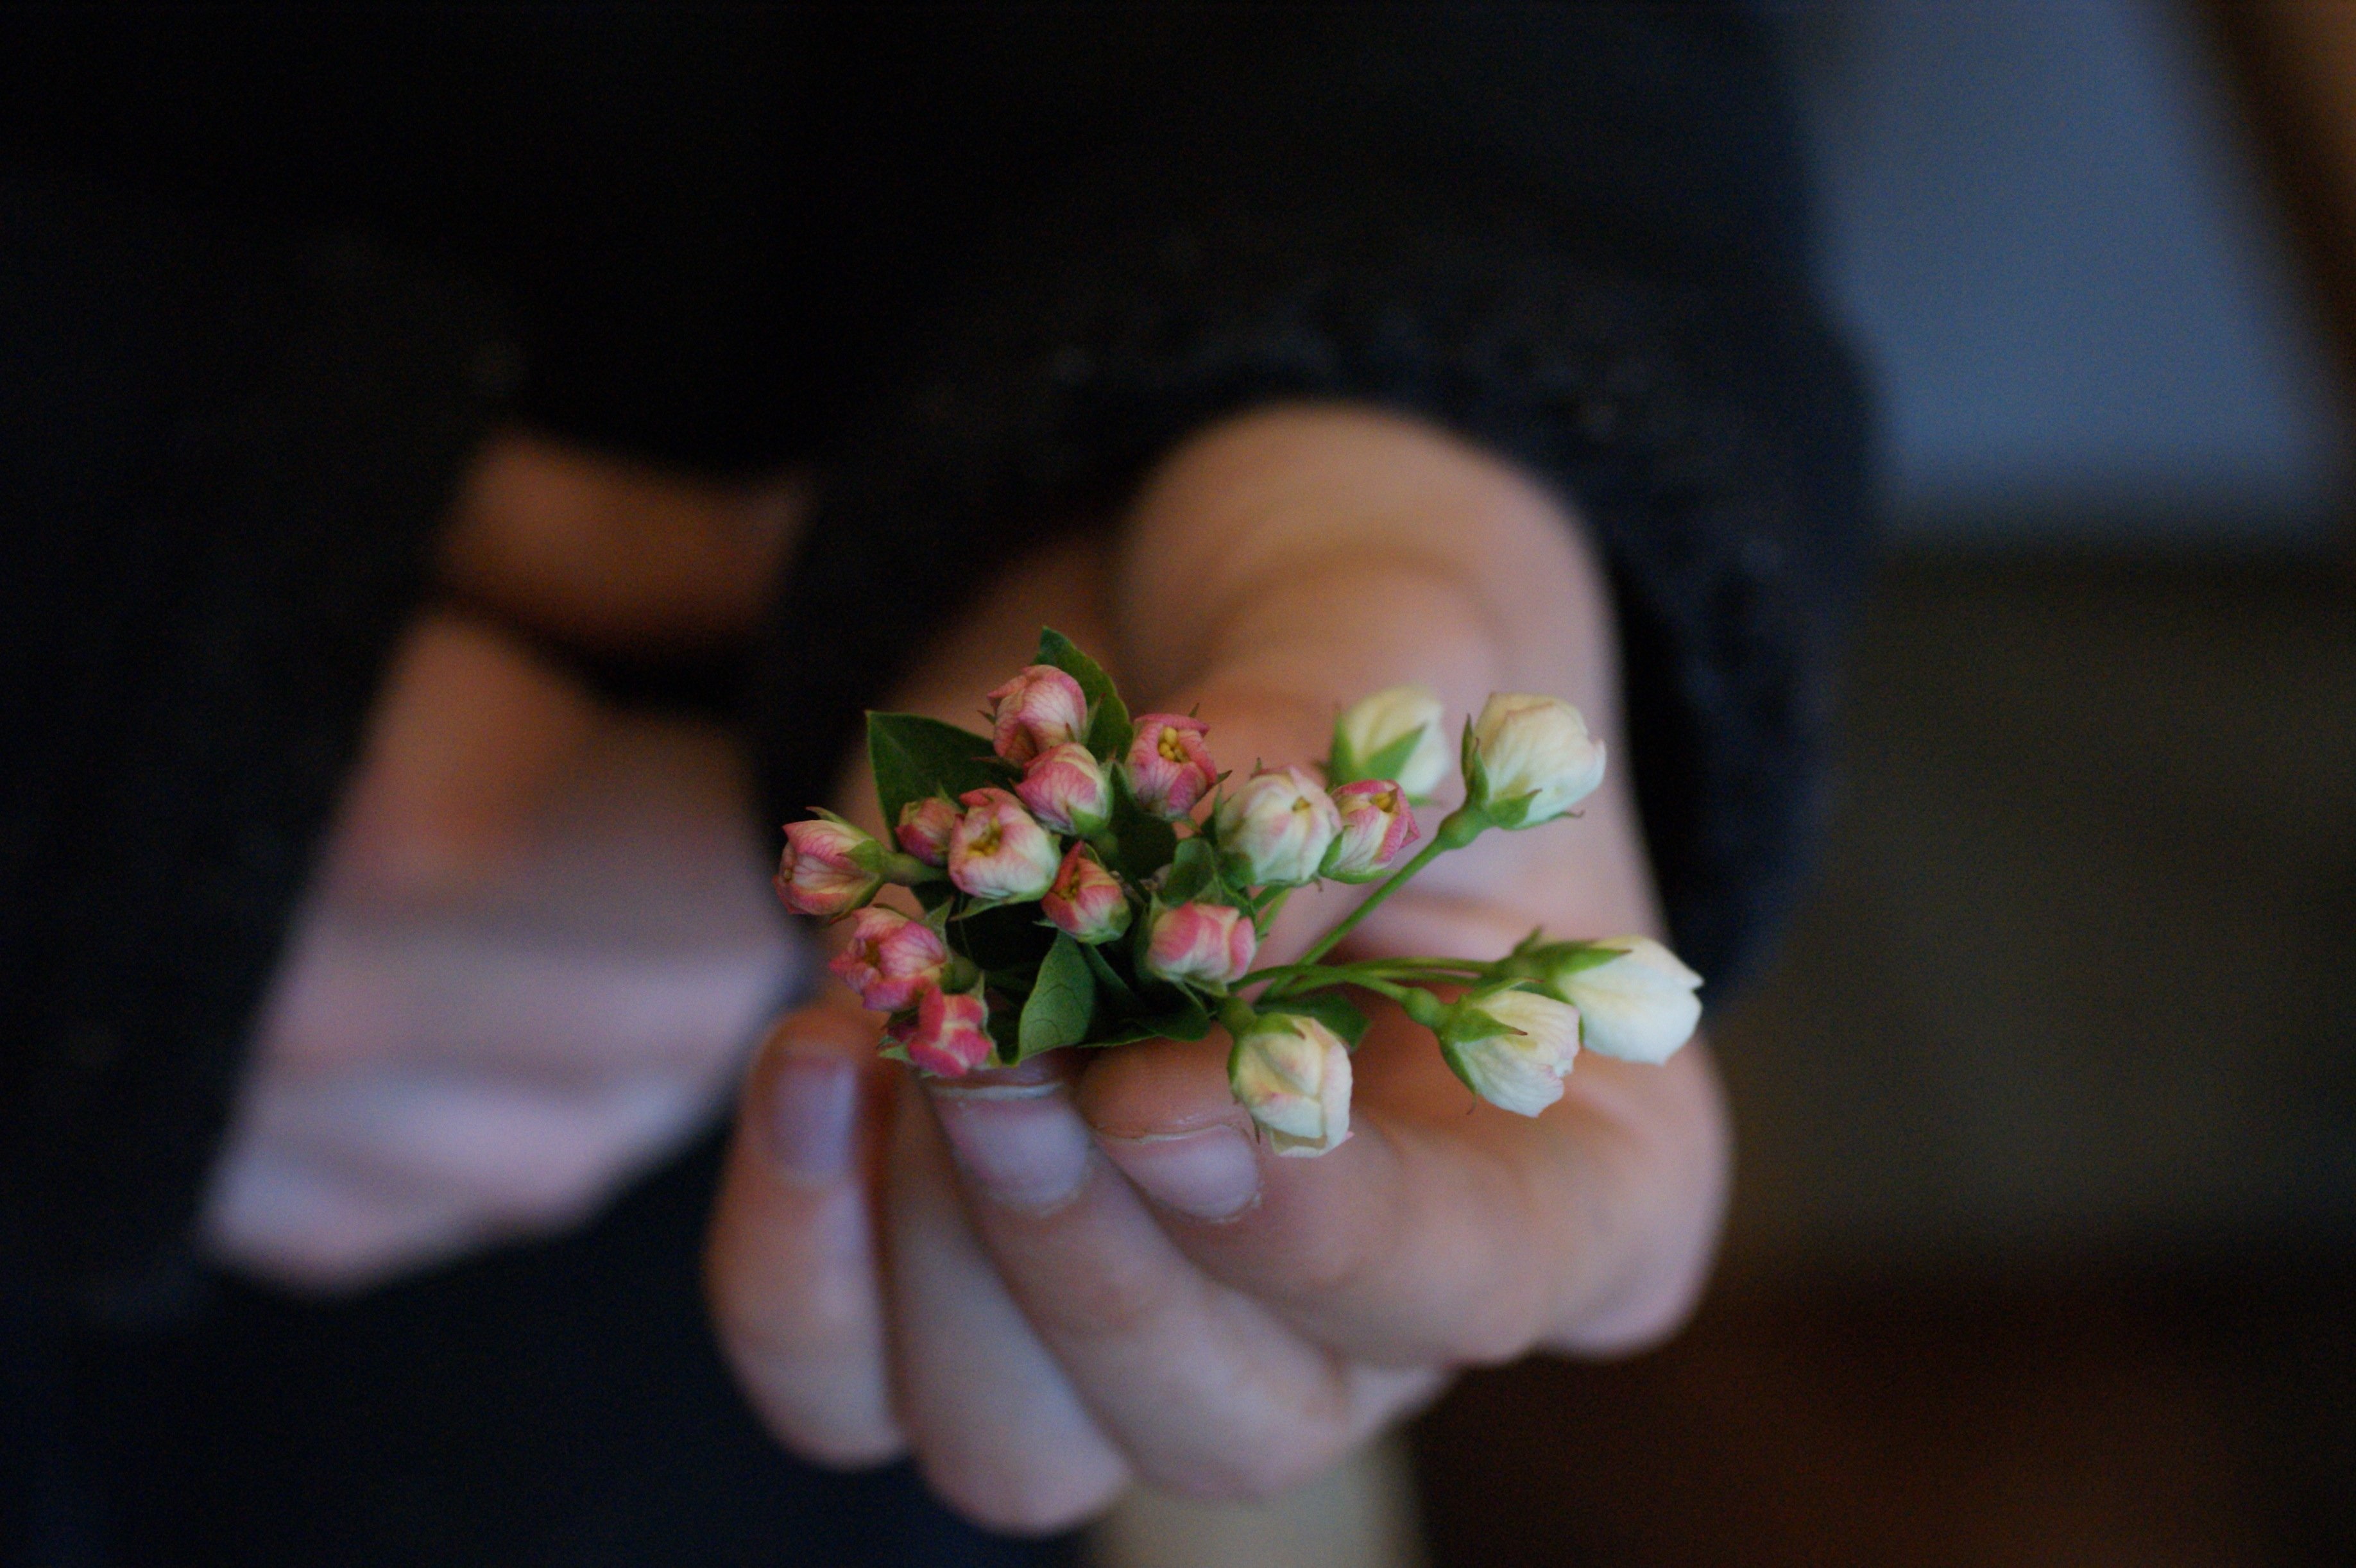 holding apple blossom The last couple of days...